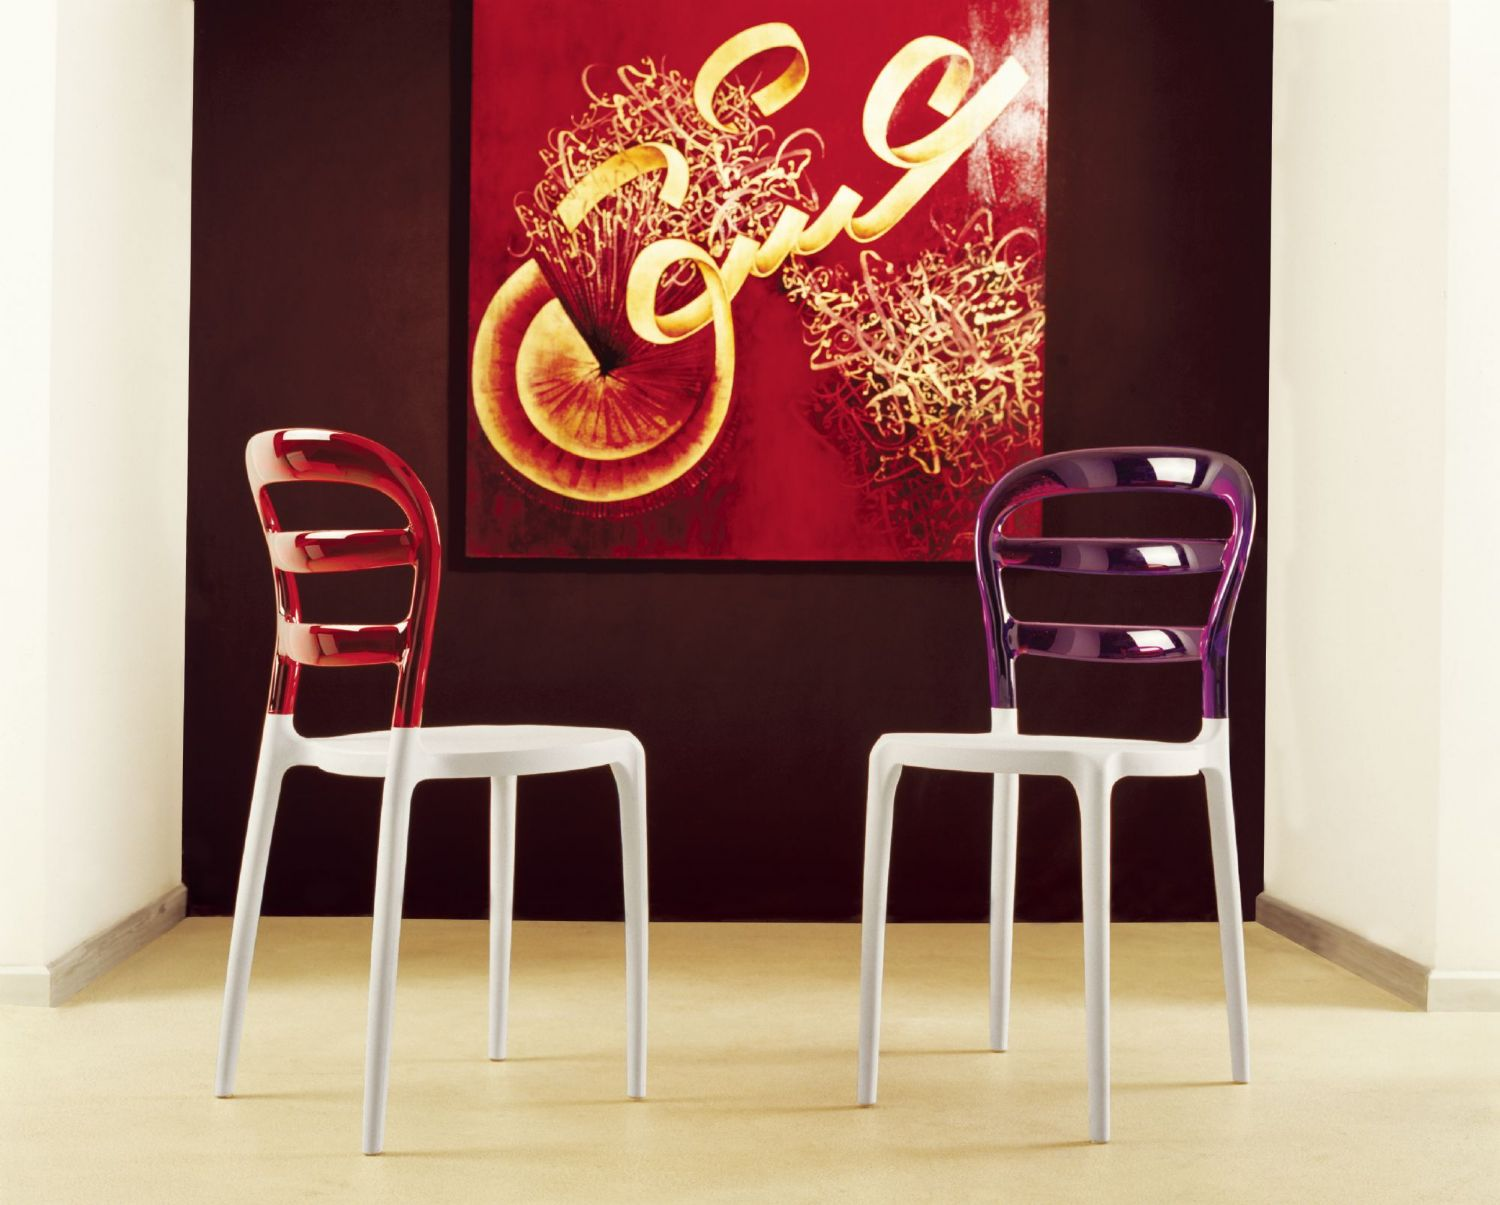 Miss Bibi Dining Chair White Red ISP055-WHI-TRED - 11